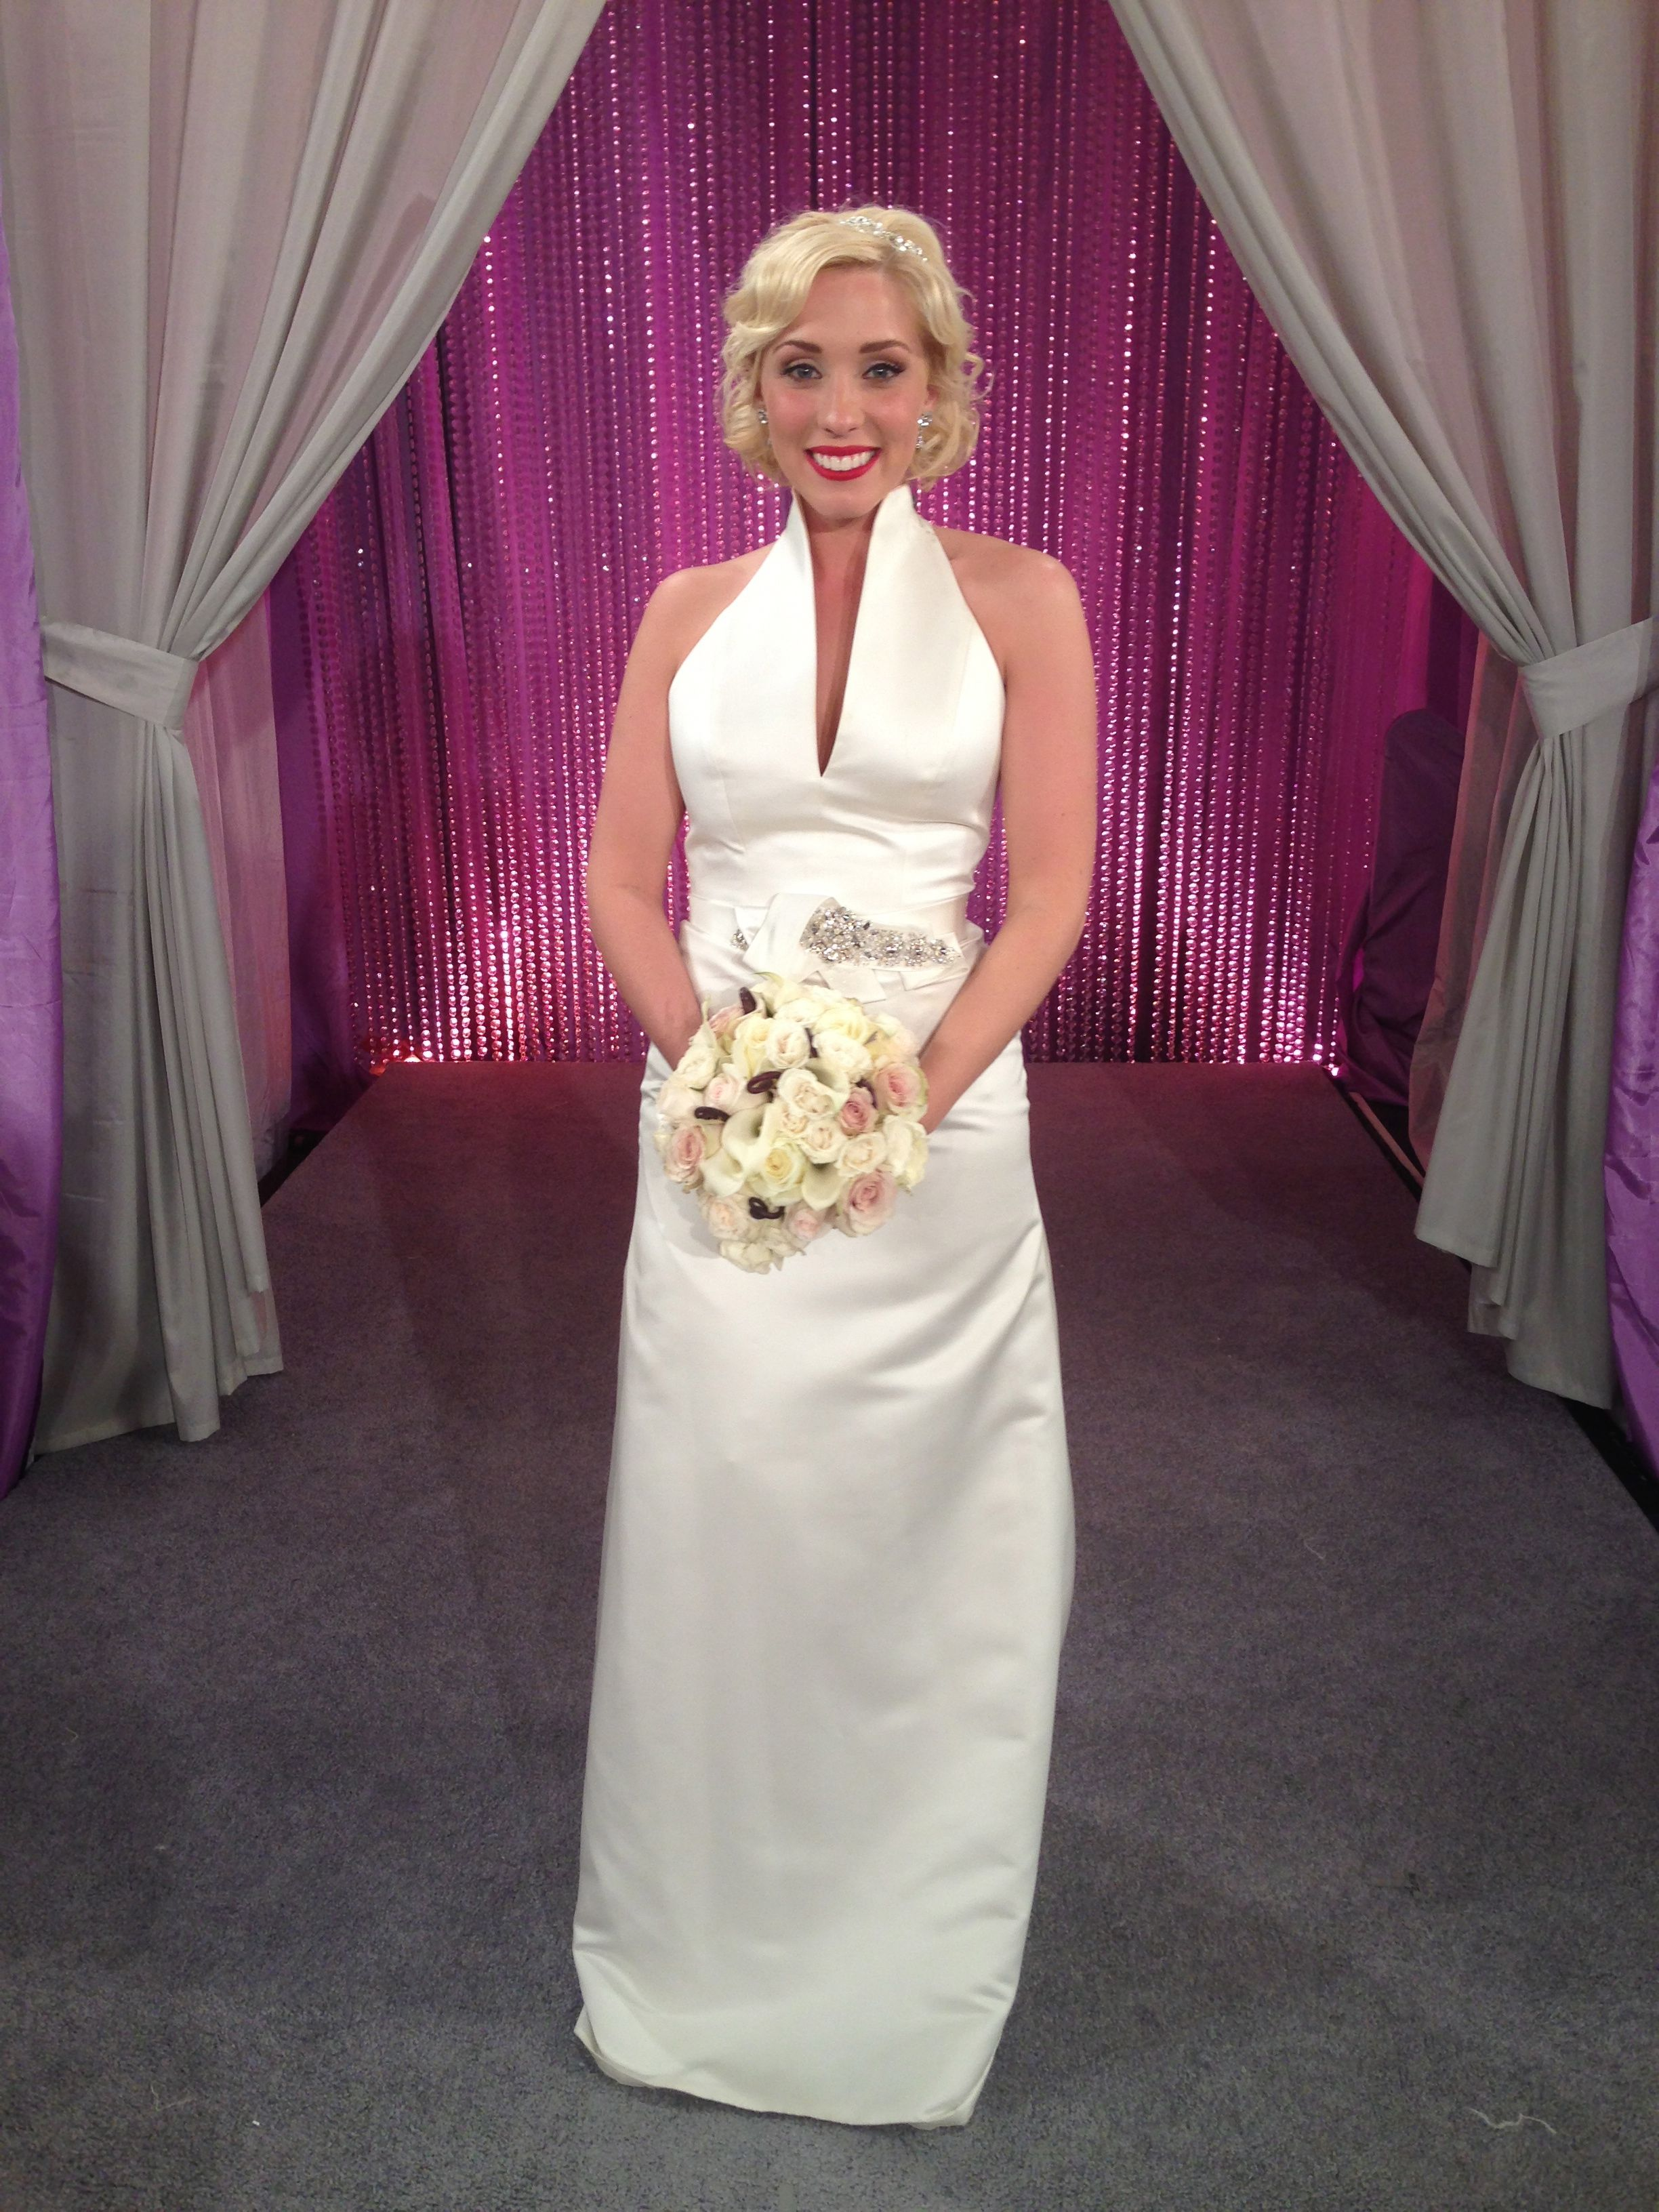 Colleen is the most amazing bride with her sense of style